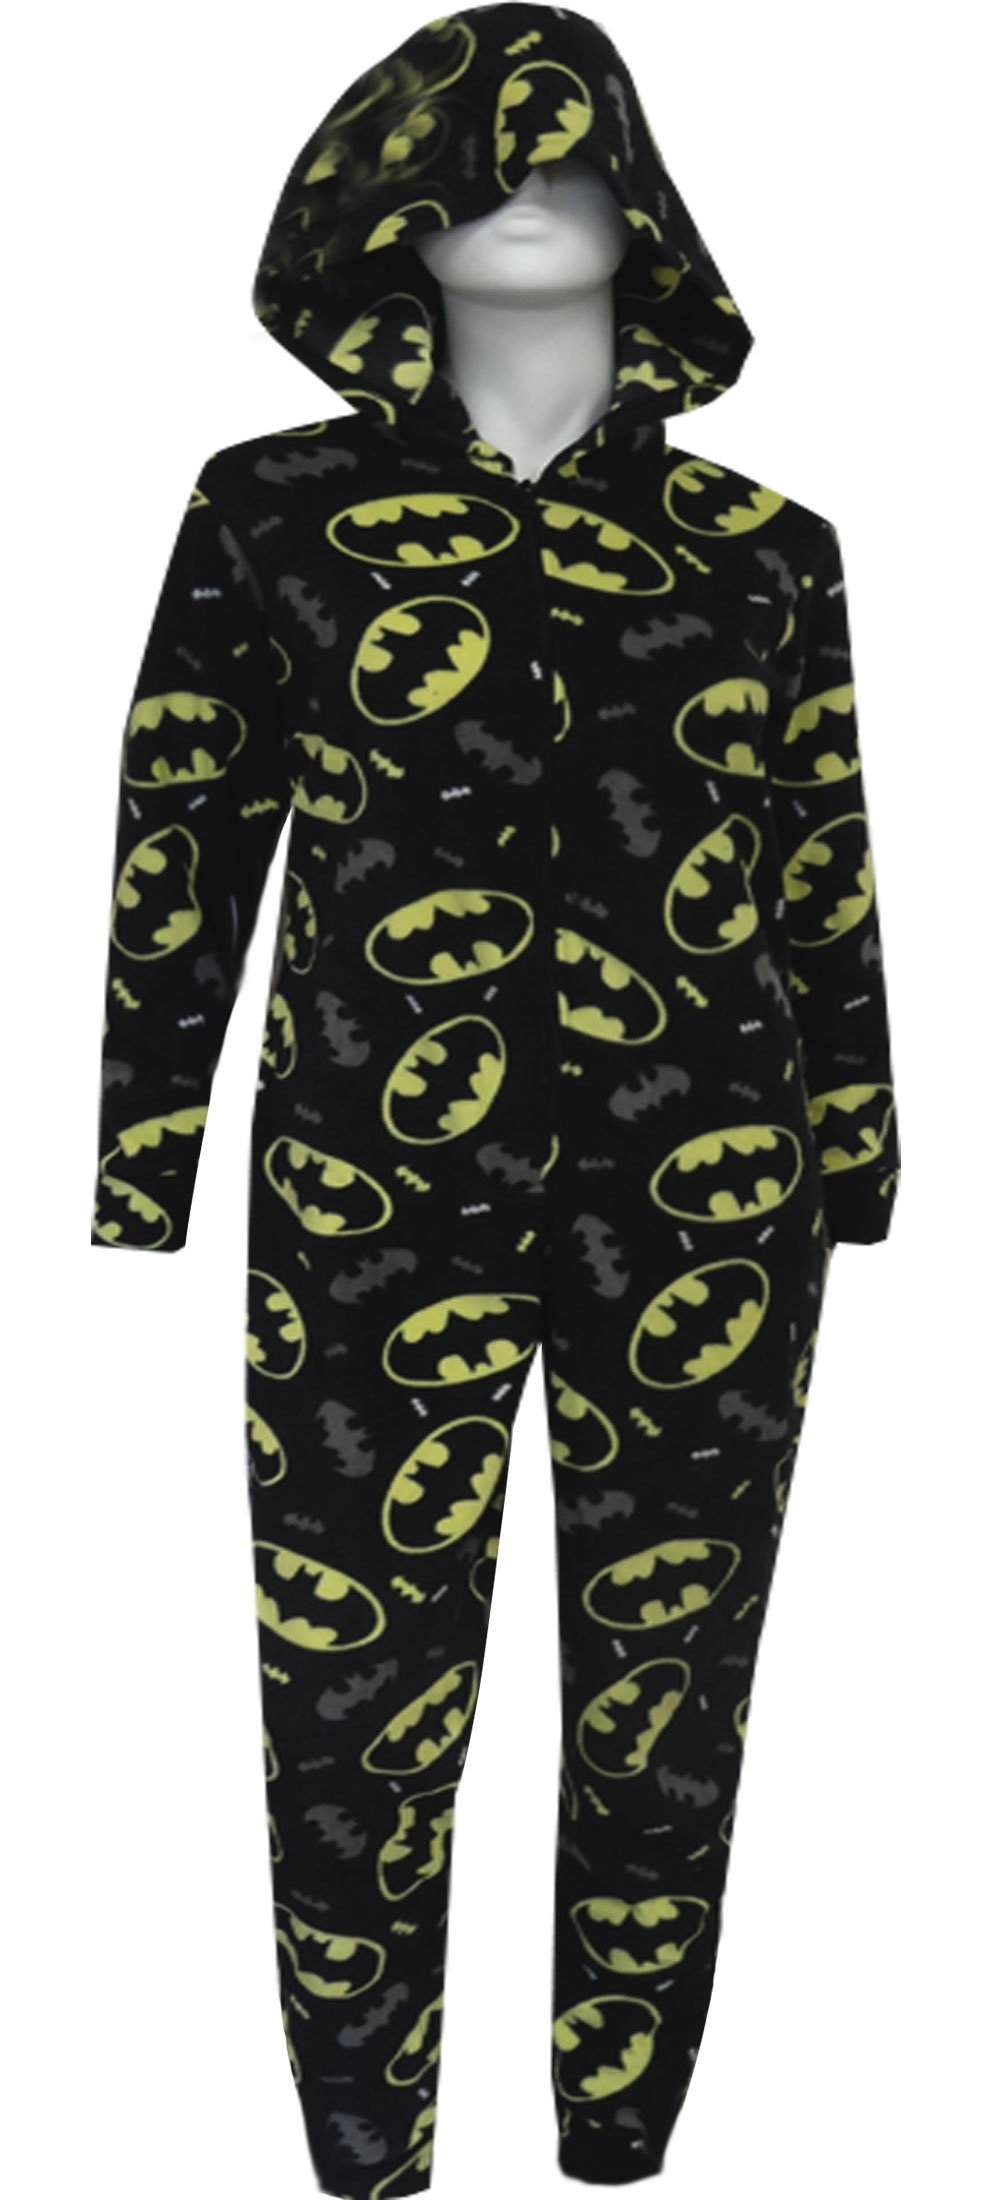 Shop for batman footie pajamas online at Target. Free shipping on purchases over $35 and save 5% every day with your Target REDcard.